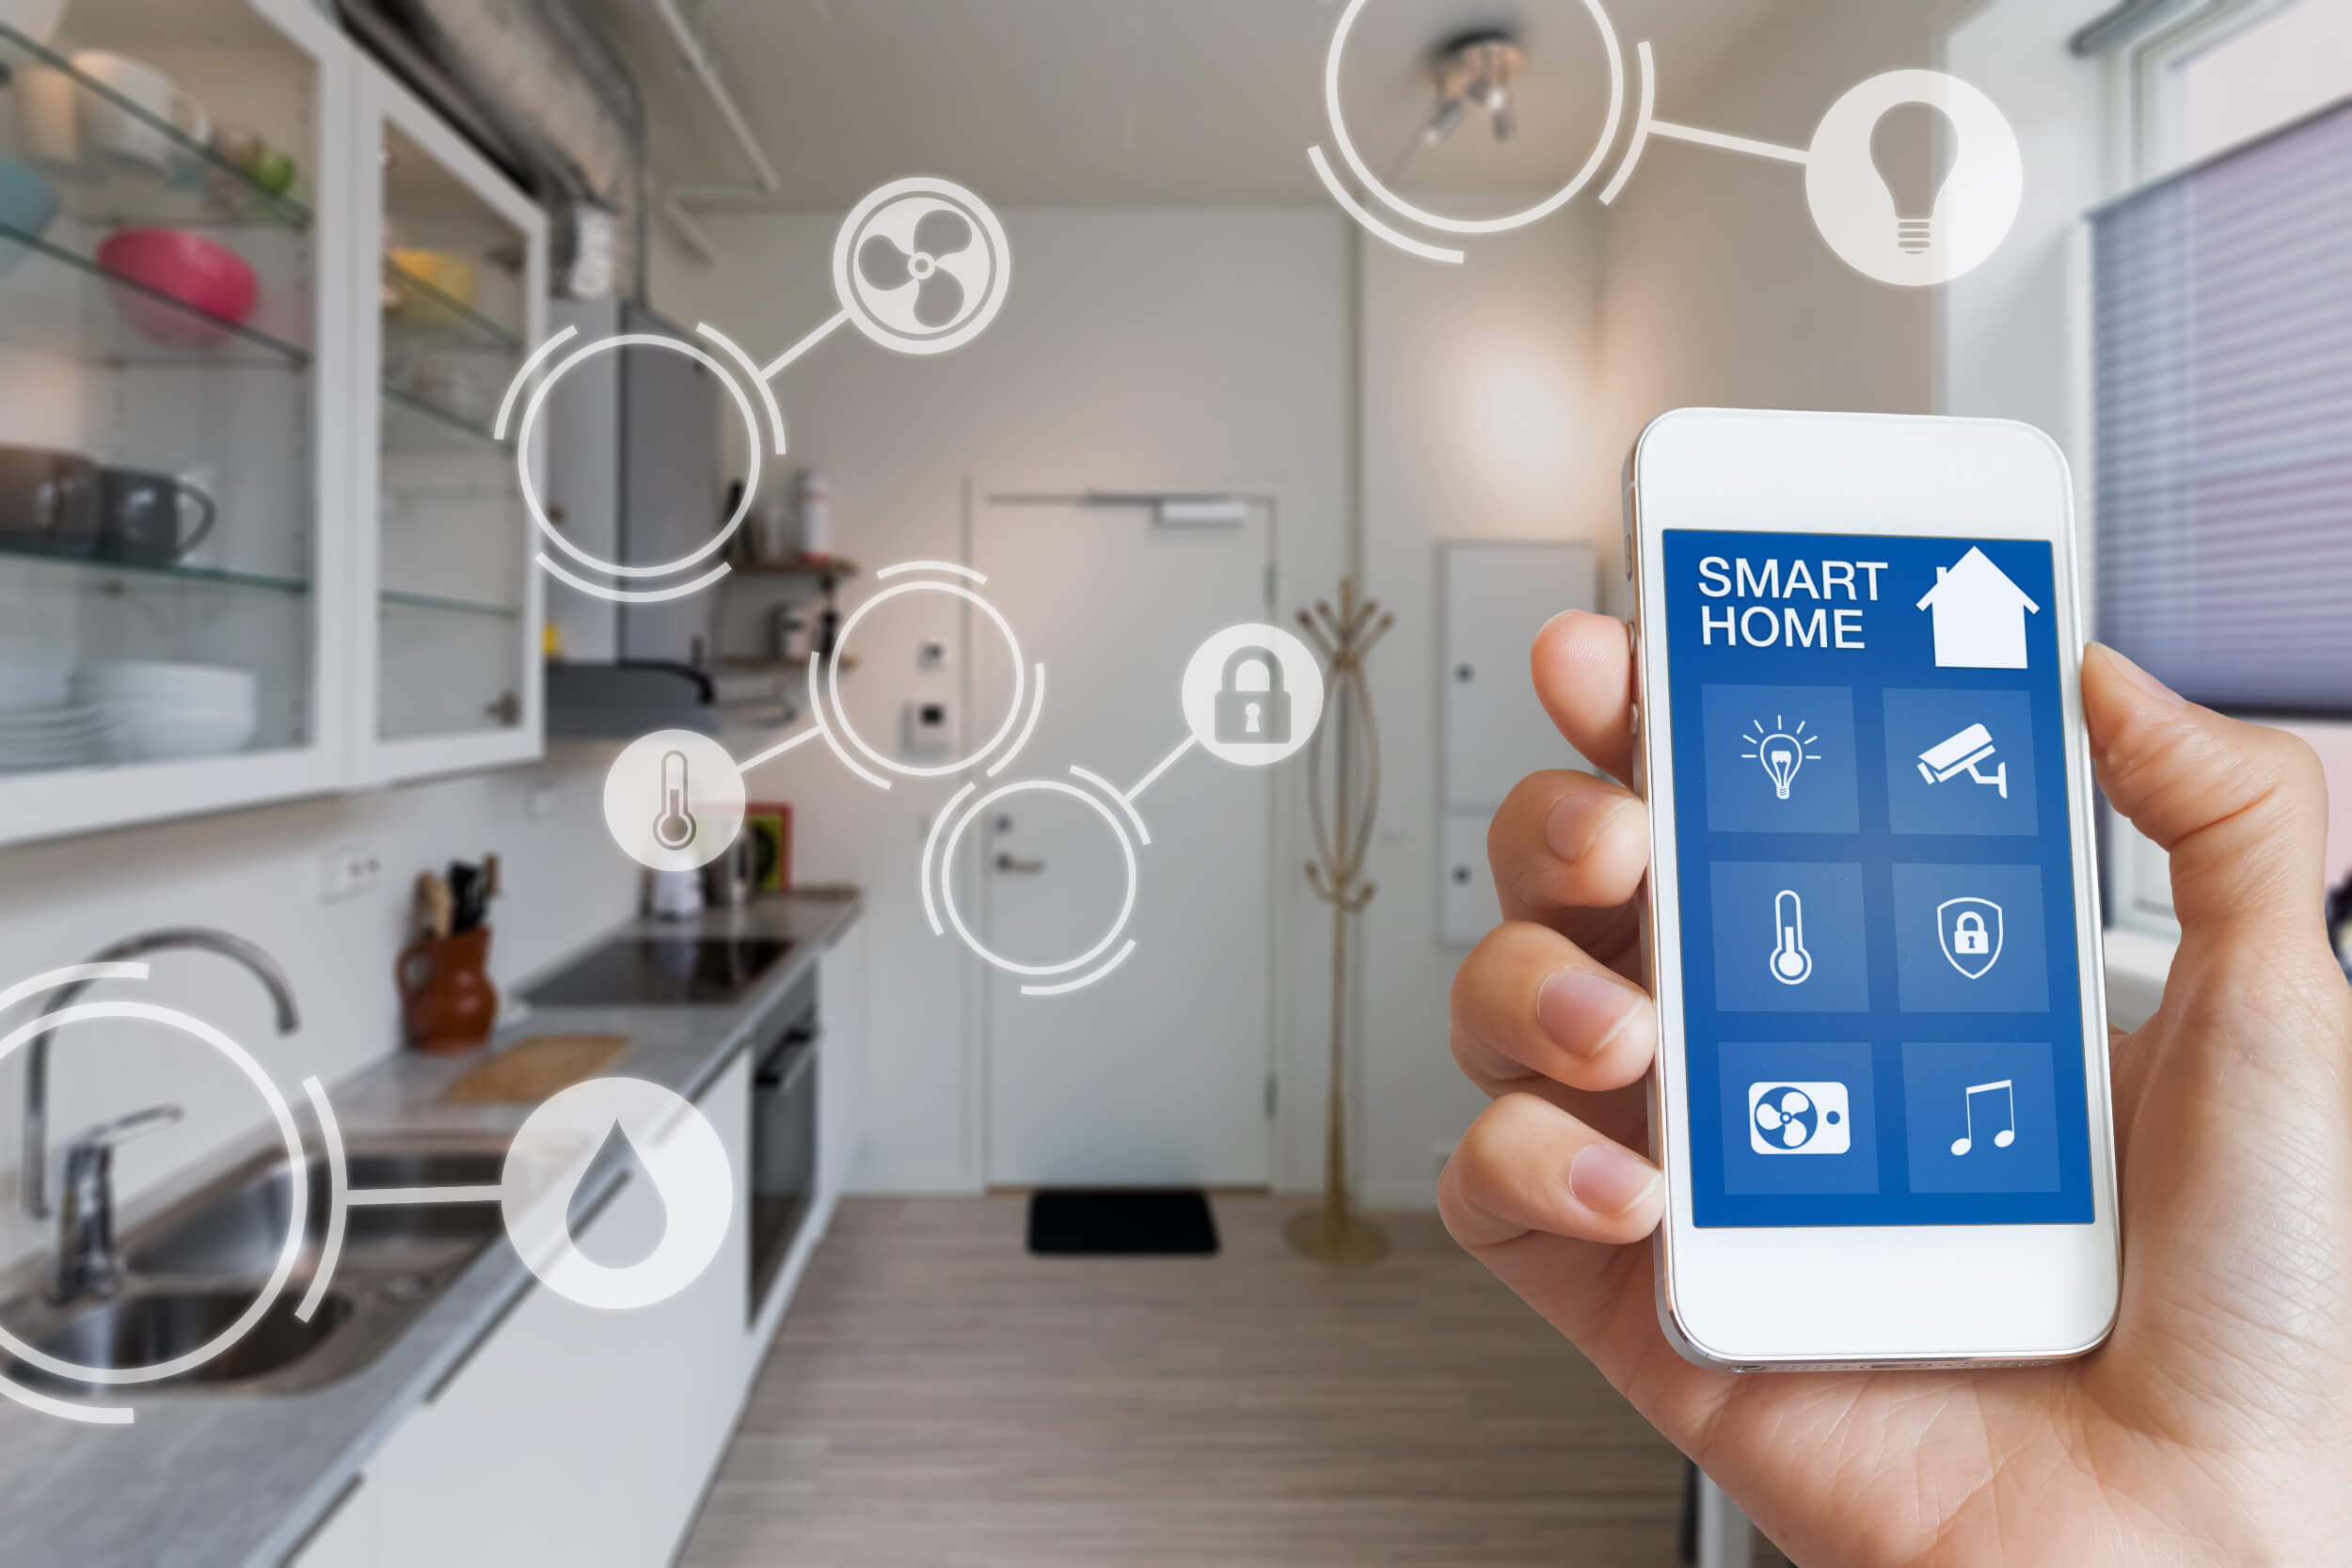 Smart Home: come la casa può essere intelligente